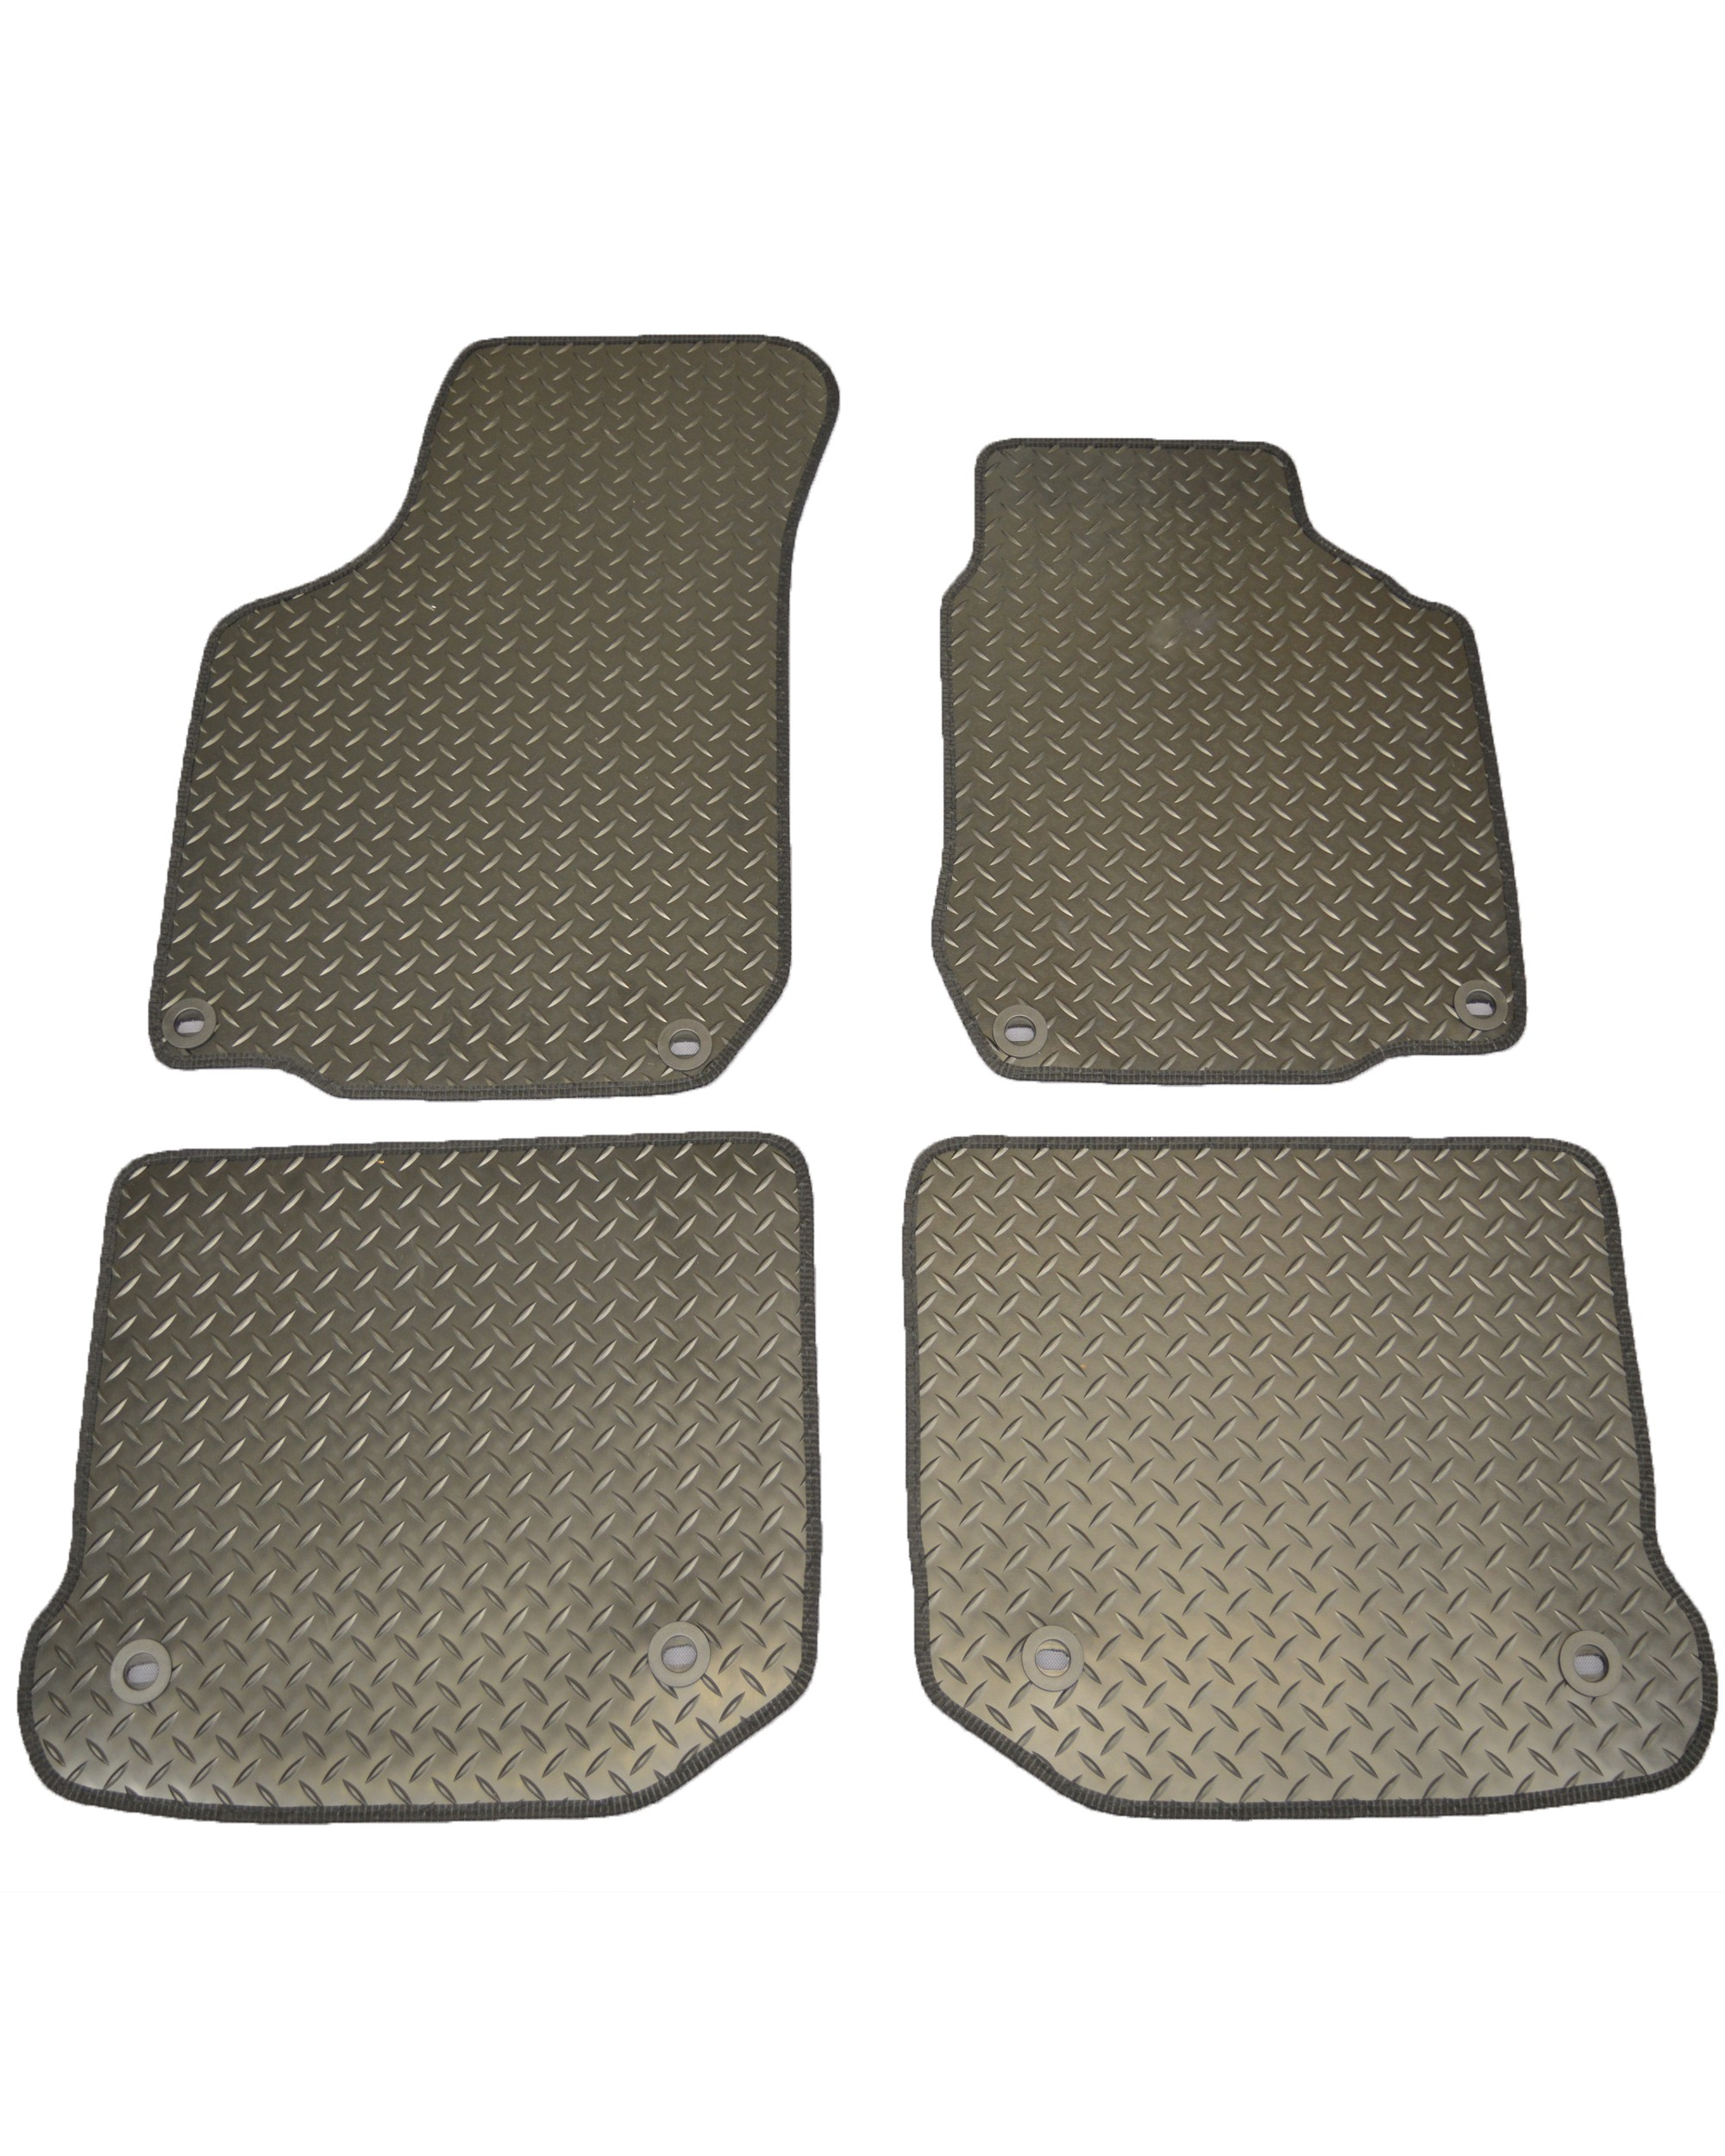 Volkswagen Caddy Maxi Rubber Car Mats